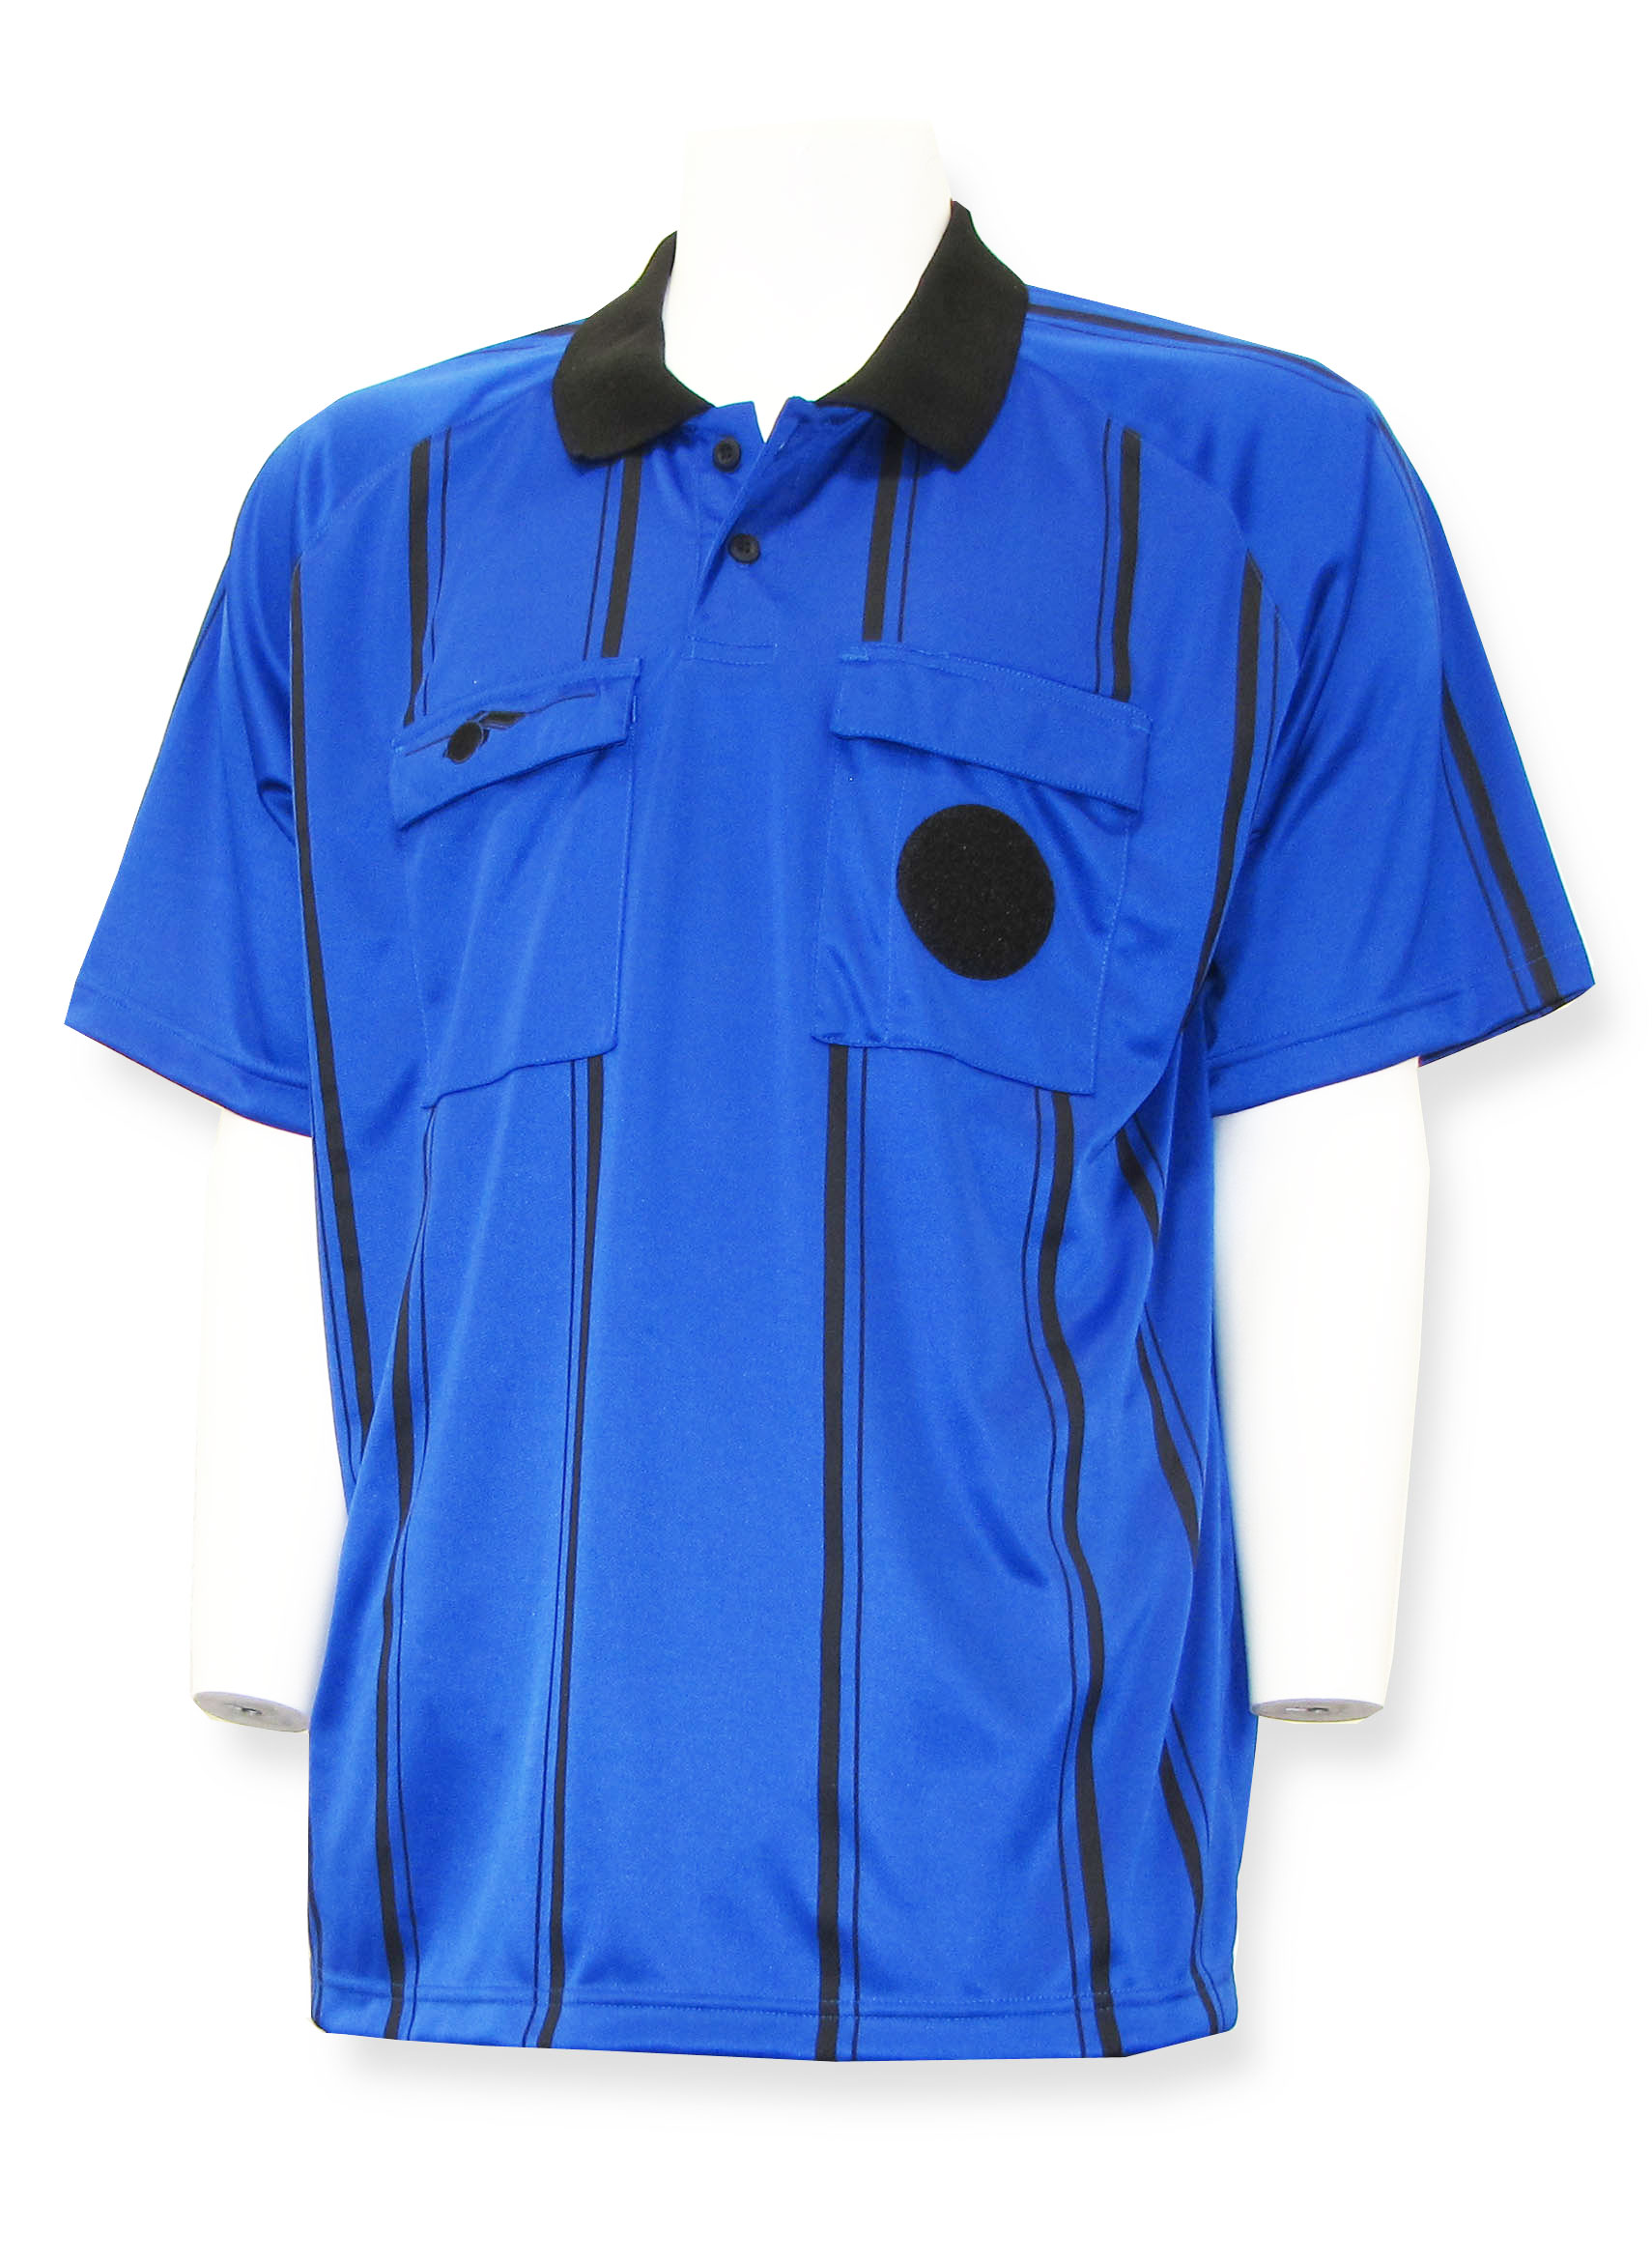 Short sleeve soccer referee jersey by Whistleline in blue